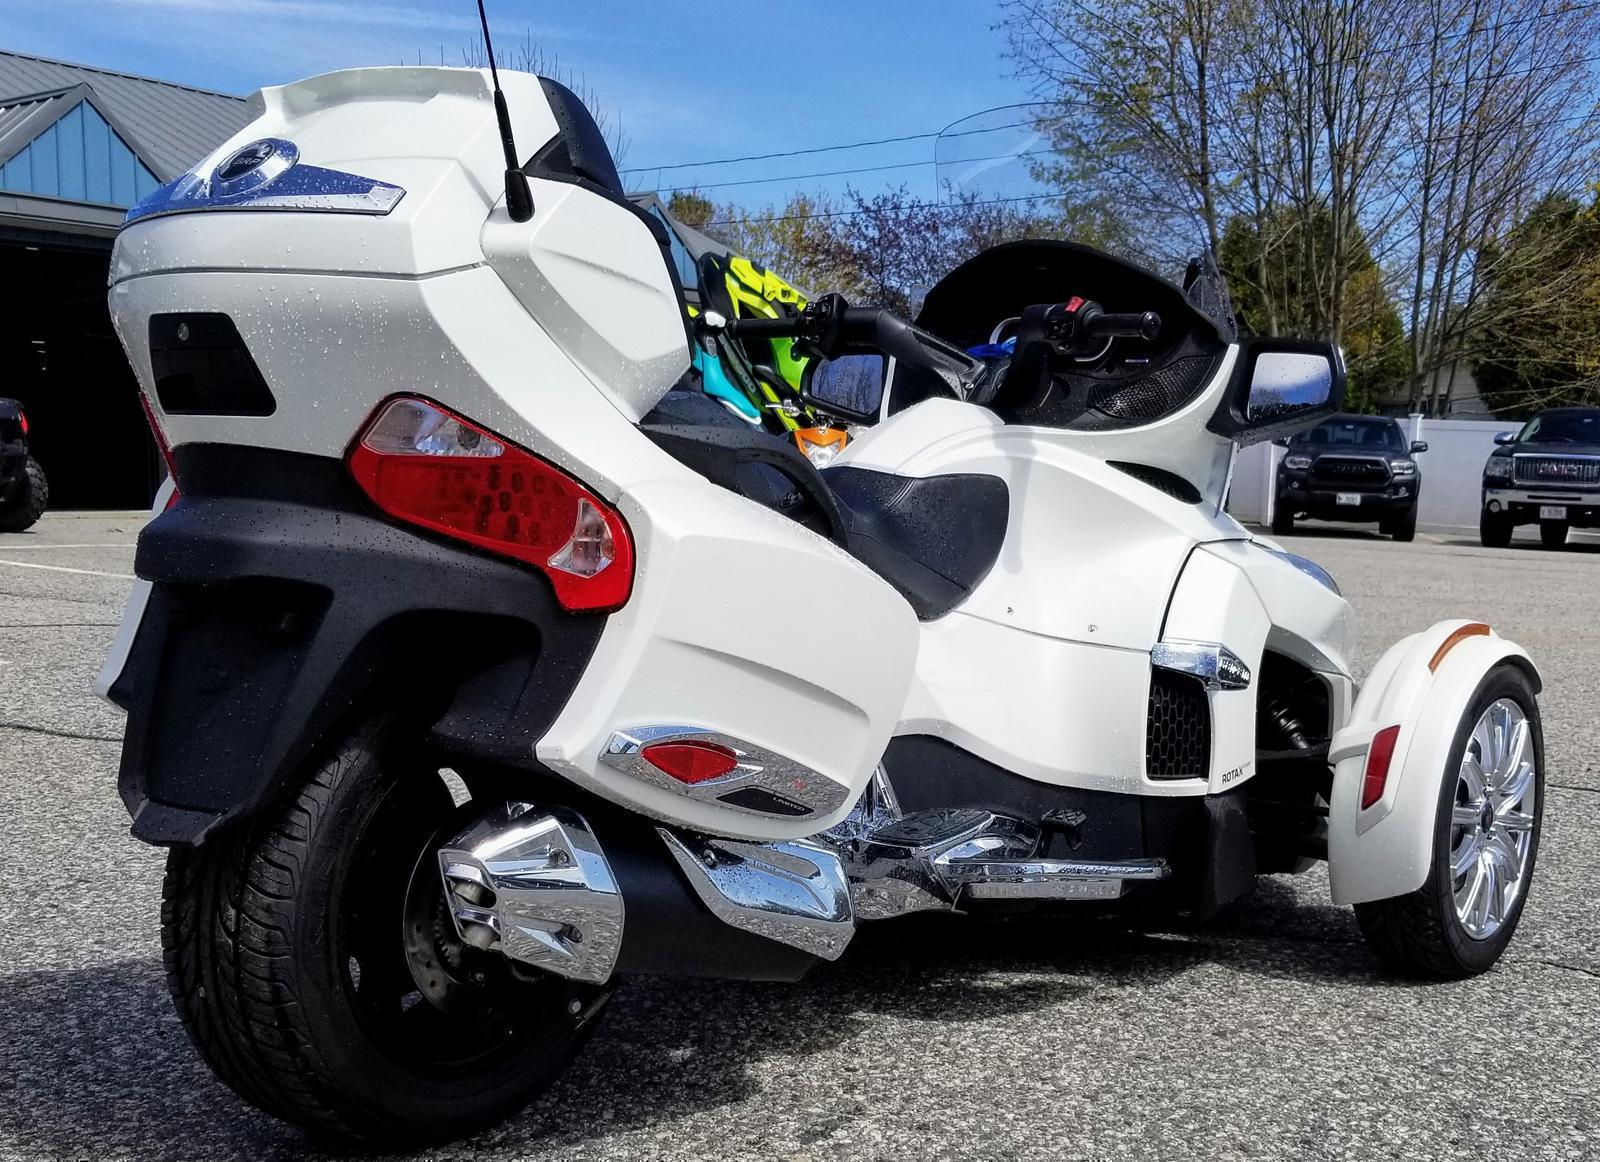 2018 Can-Am Spyder® RT Limited SE6 - Chrome for sale in Sanford, ME